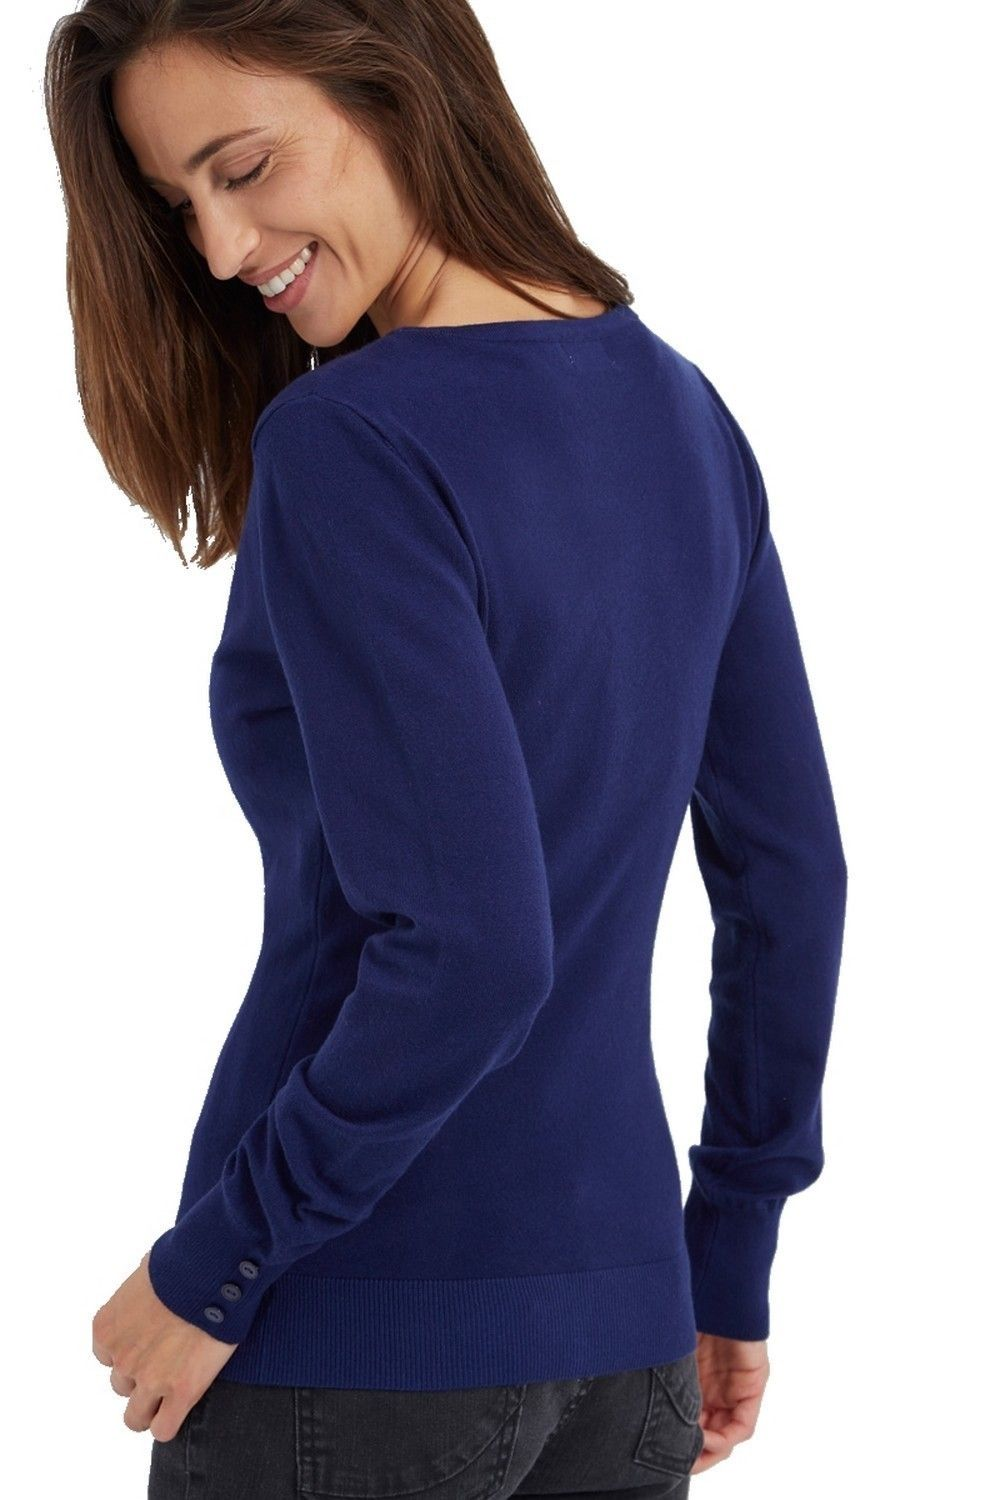 C&JO V-neck Cardigan with Buttoned Sleeves in Navy